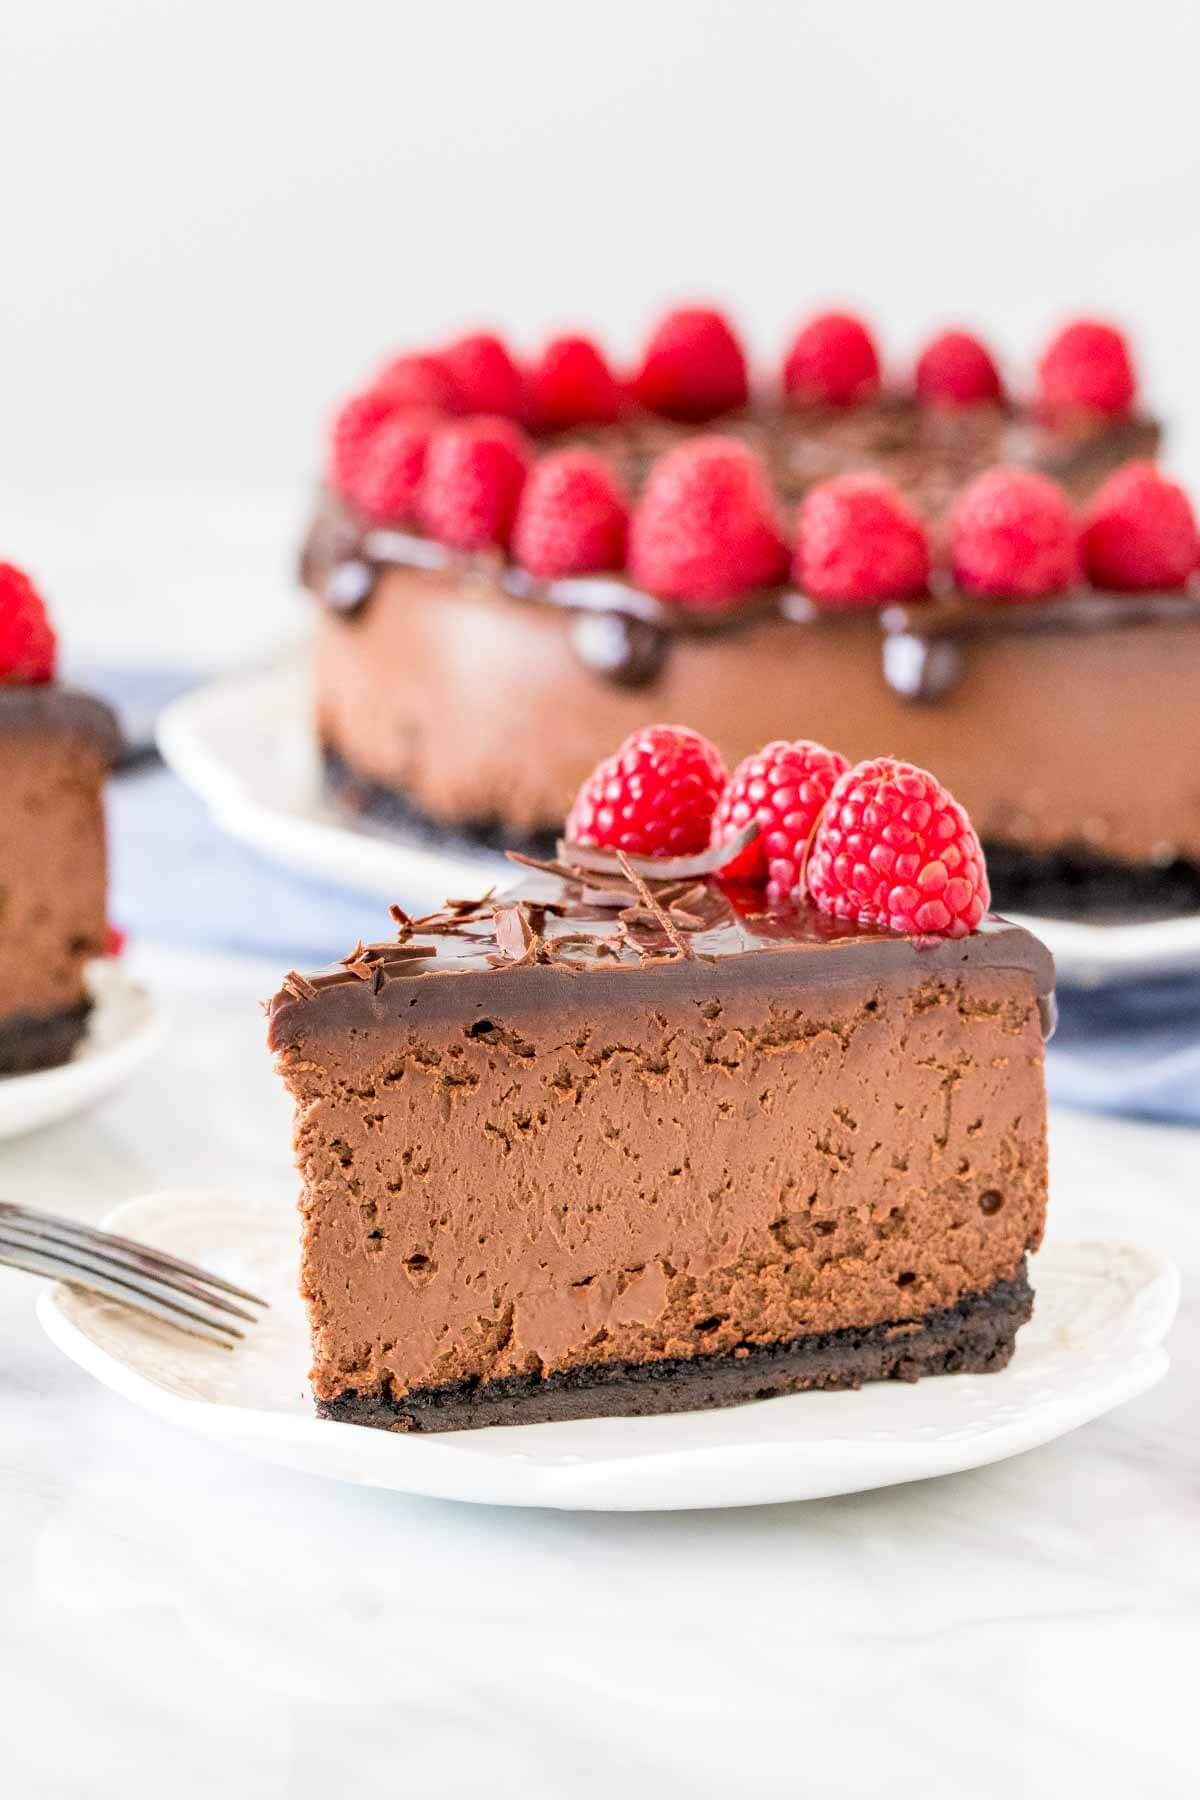 Slice on chocolate cheesecake on a plate with plate of cheesecake in background.